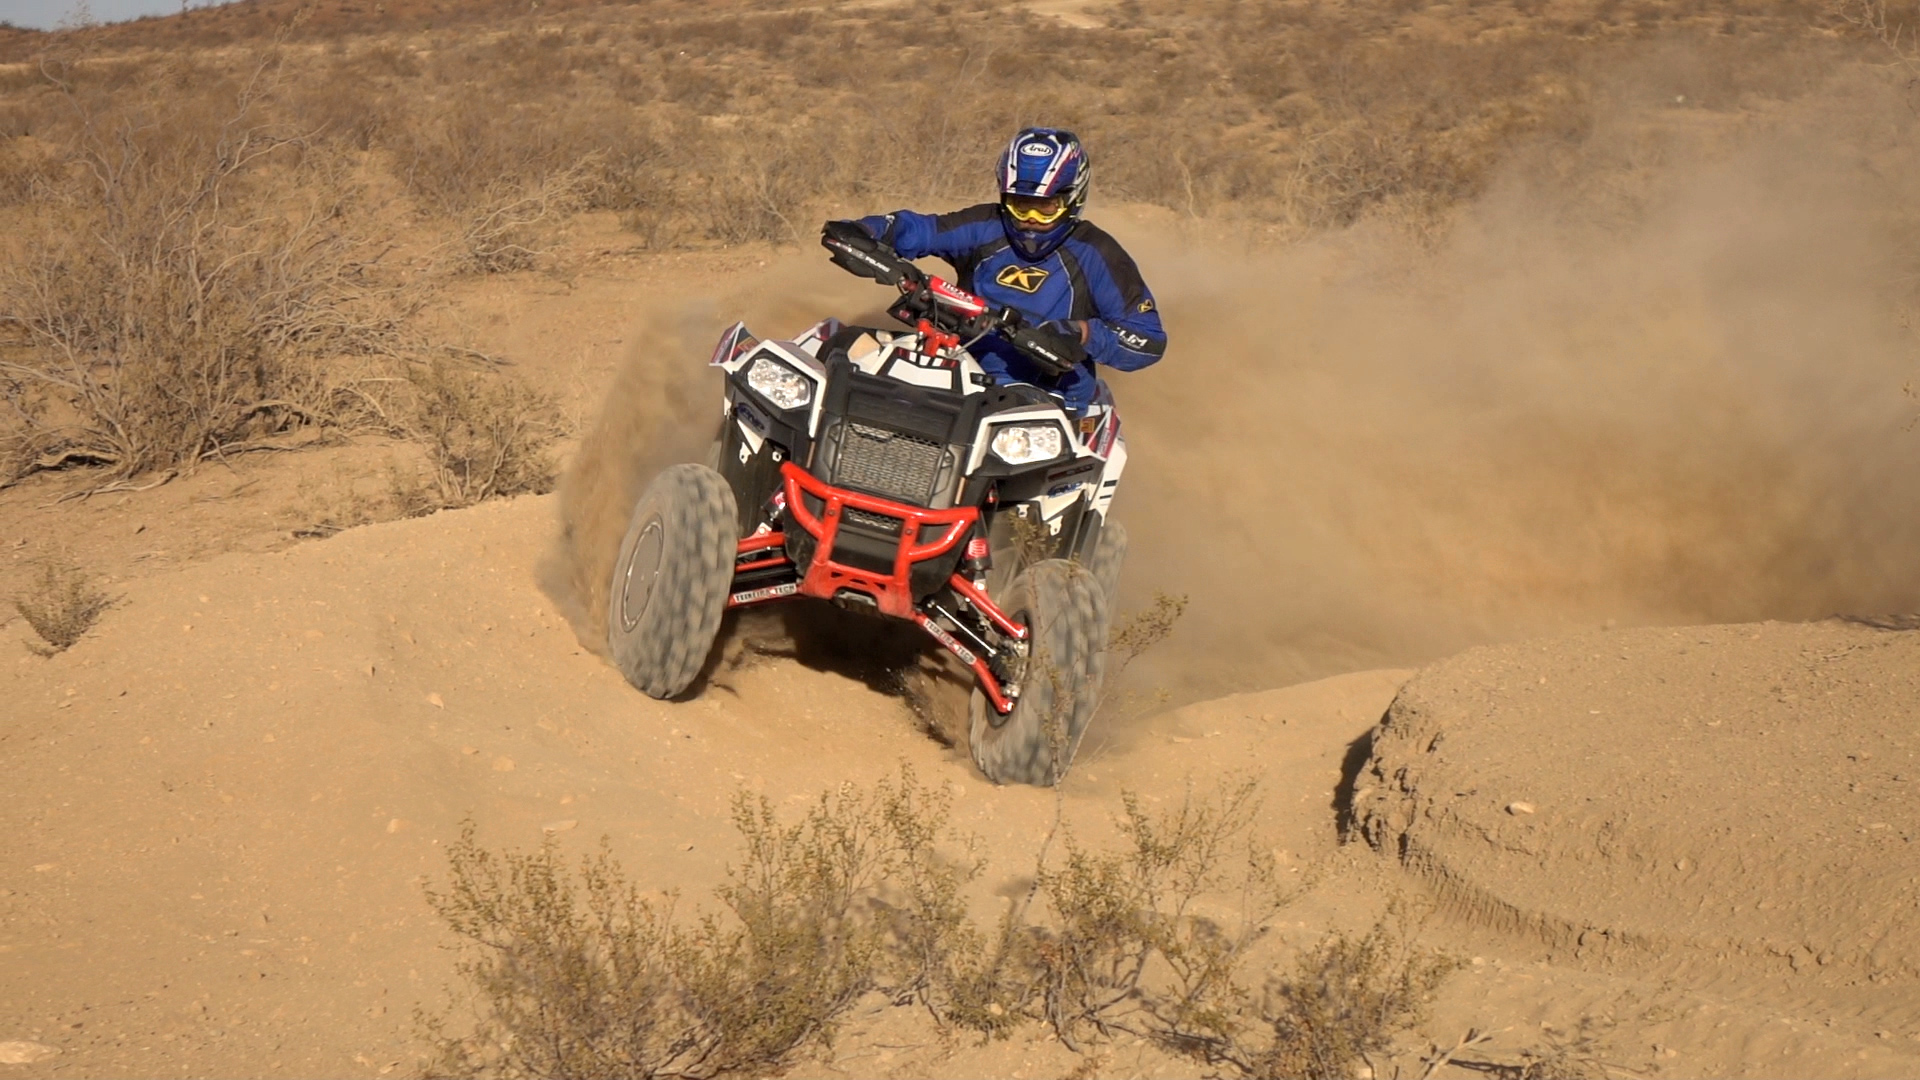 Ultimax XP Keil Antriebsriemen Aramidfaser ATV Polaris Sportsman Scrambler 2009